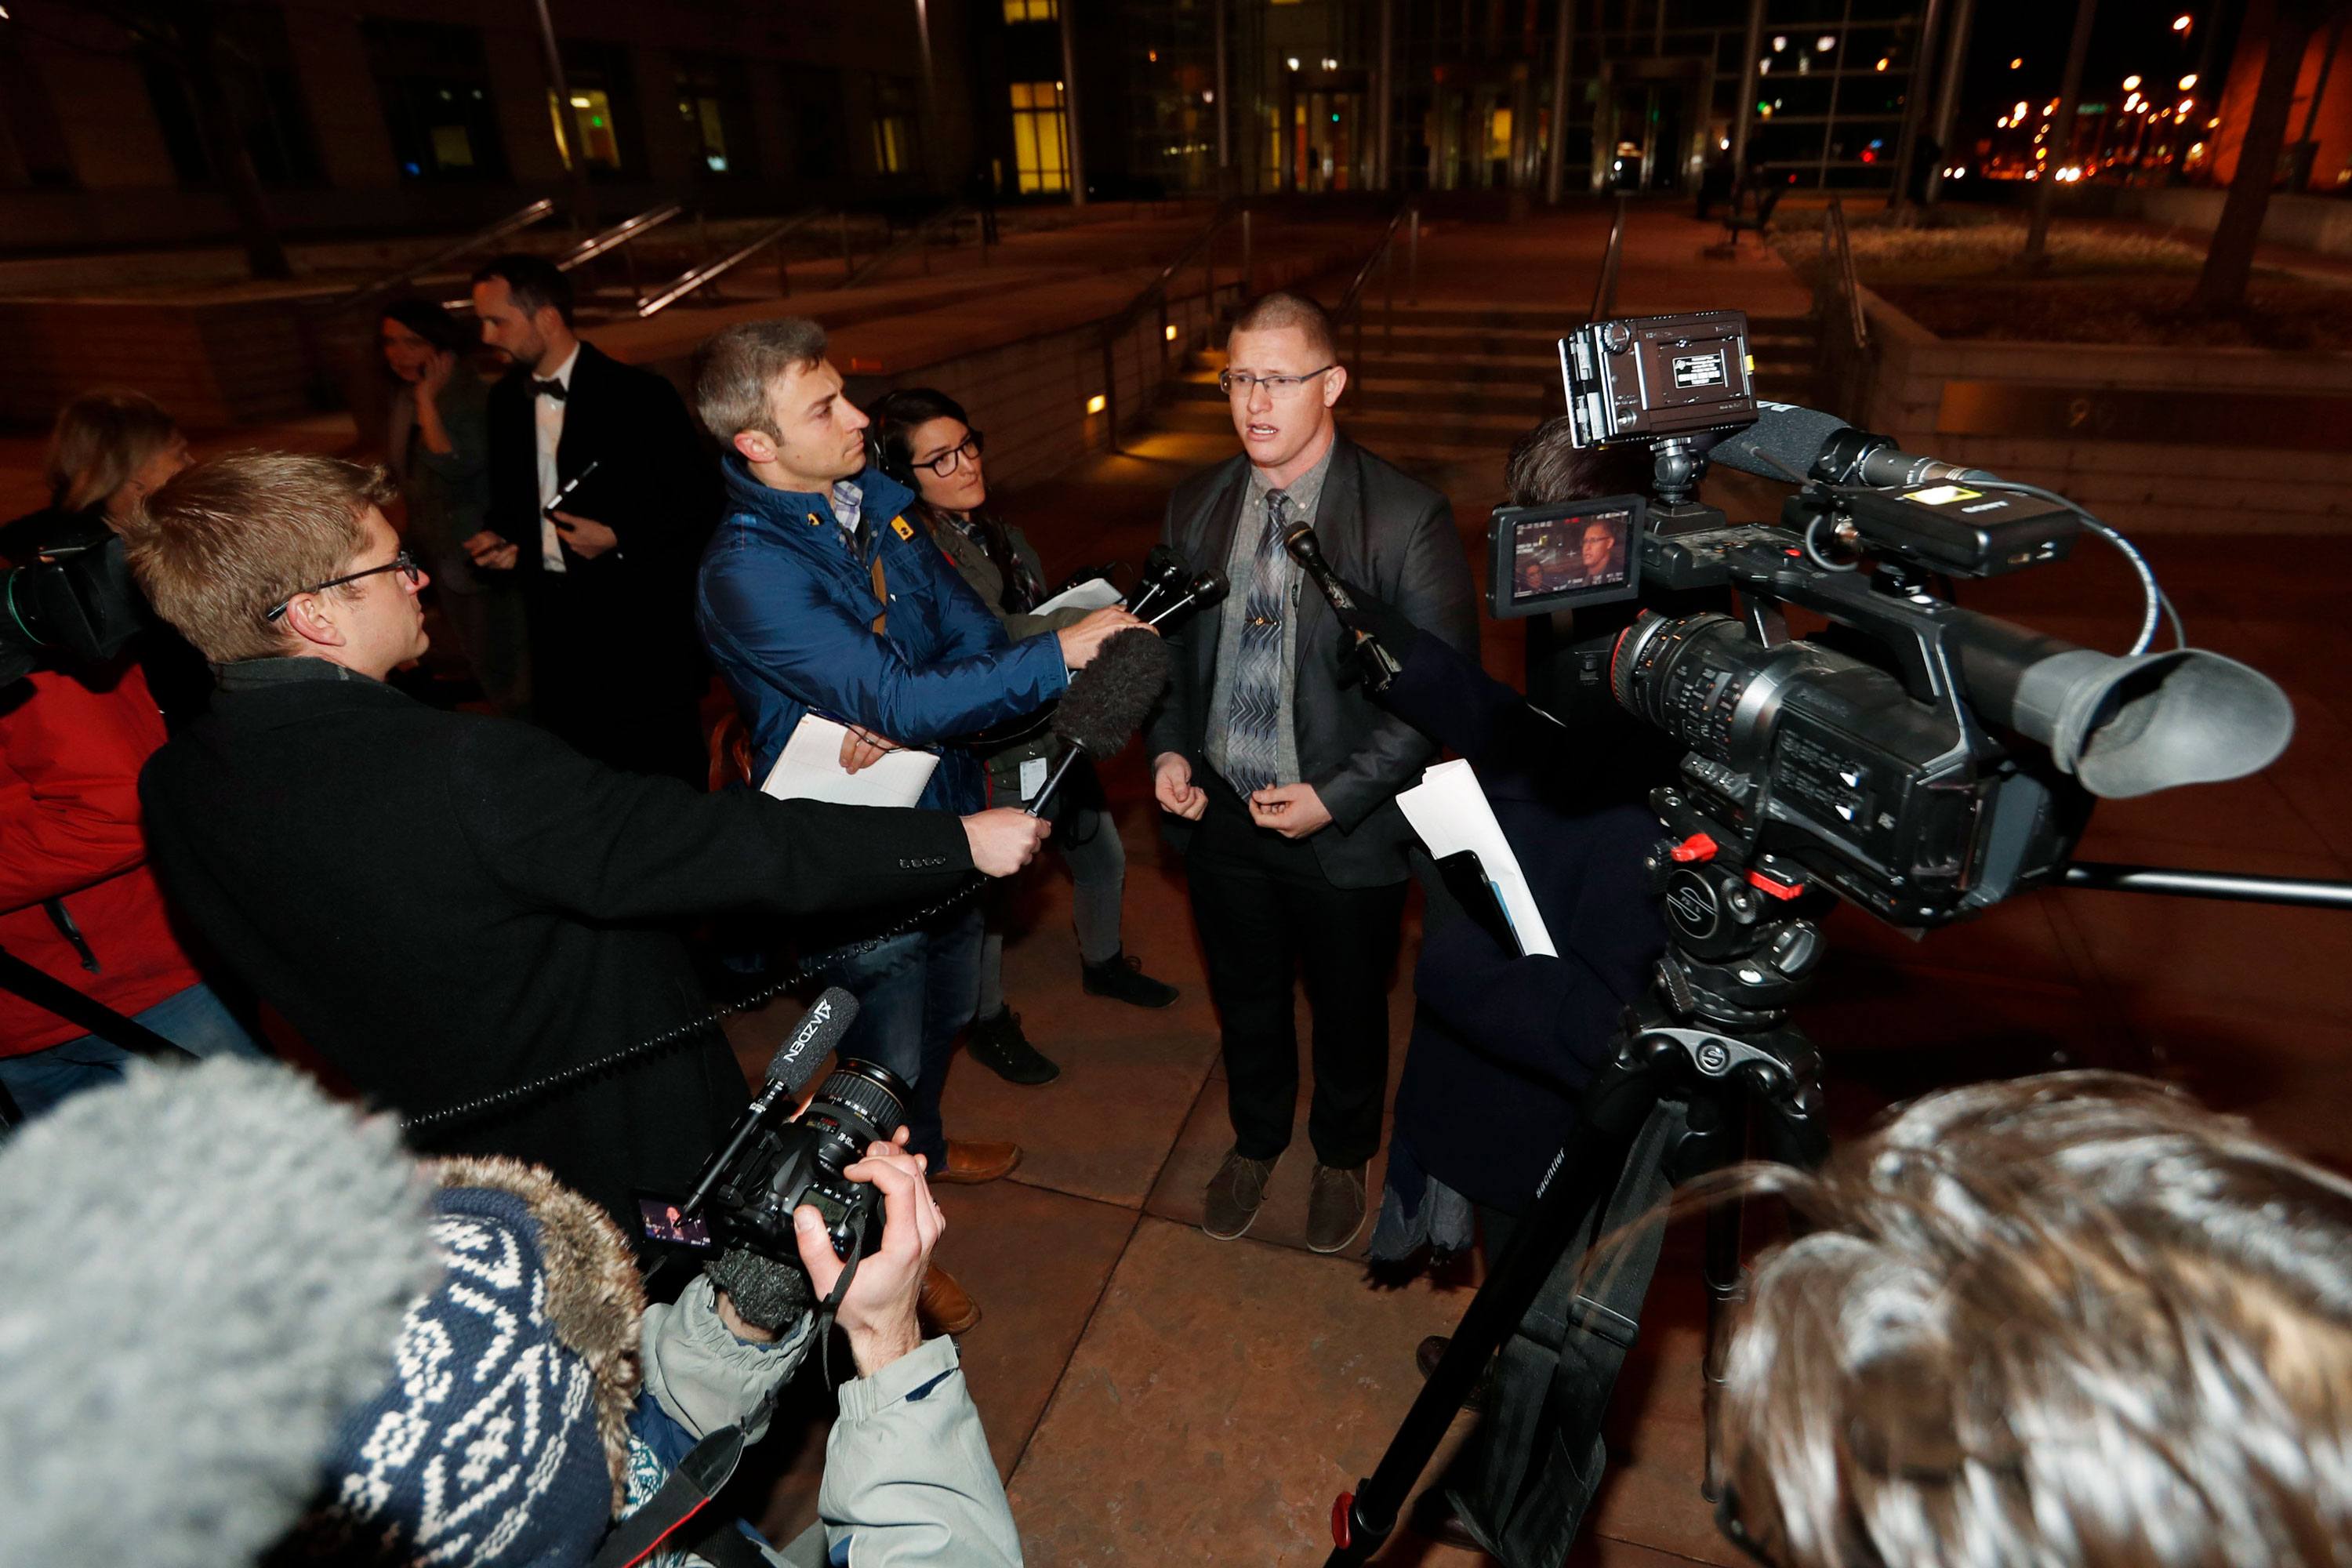 Micheal Baca, center, speaks after arguments in a lawsuit were heard Dec. 12, 2016, outside the federal courthouse in downtown Denver. The suit had sought to free Colorado's electors of the requirement that they vote for the winner of the state's popular vote in the presidential election.